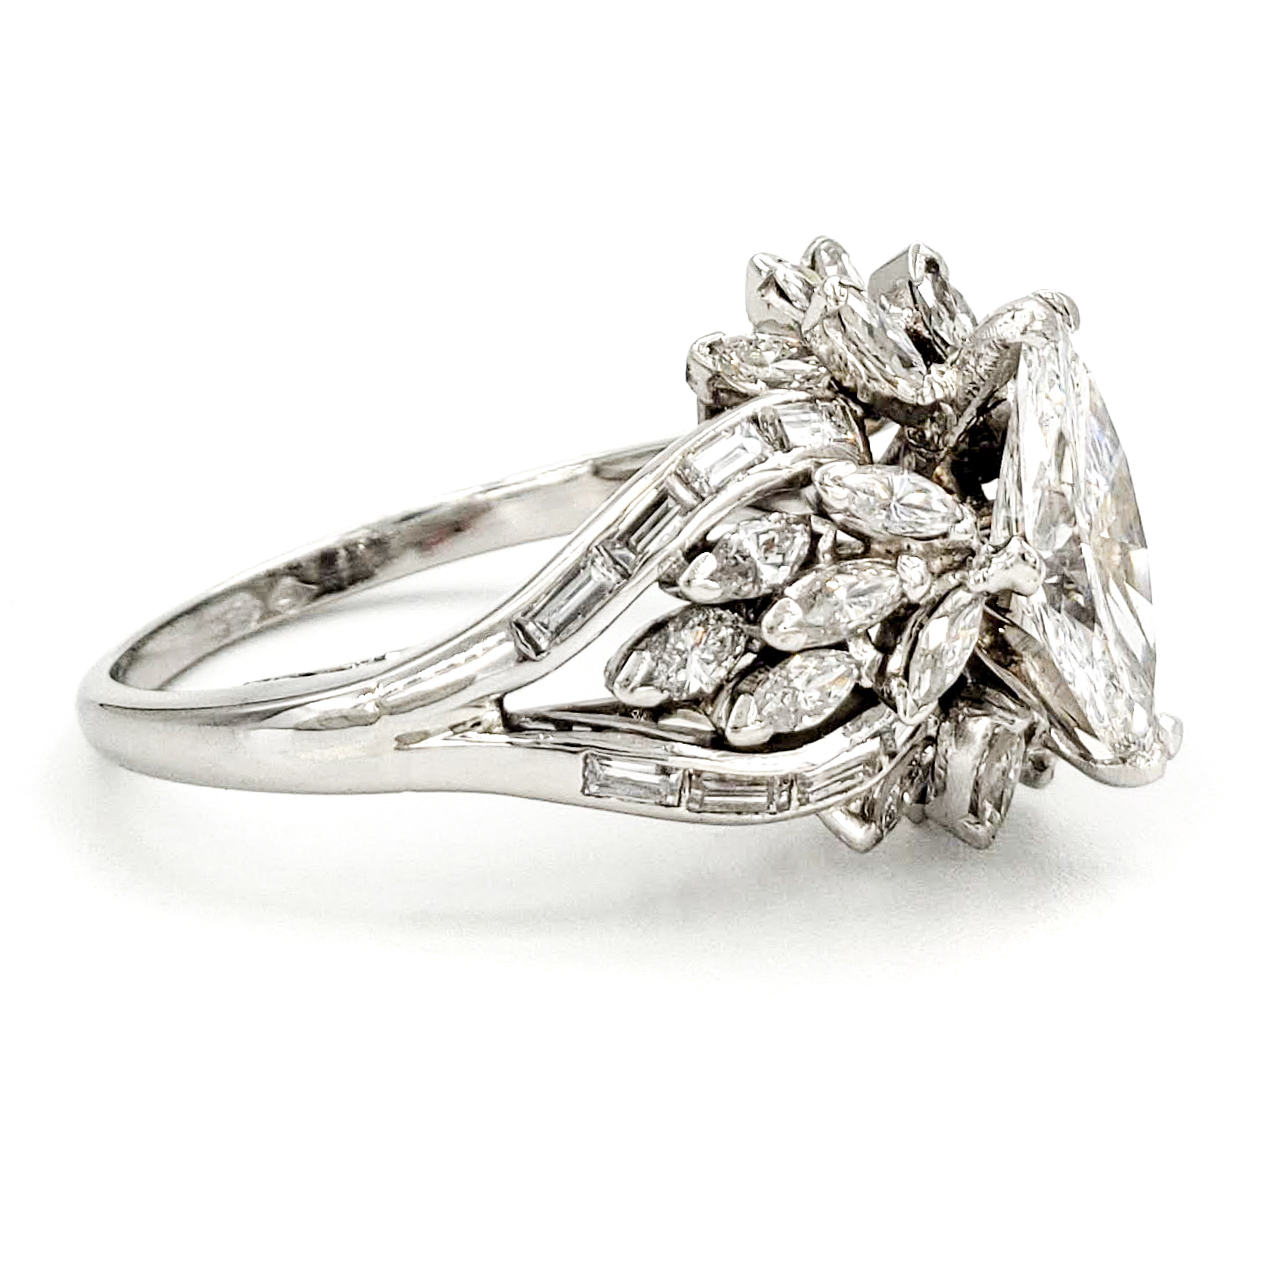 vintage-platinum-engagement-ring-with-0-89-carat-marquise-cut-diamond-gia-e-si1